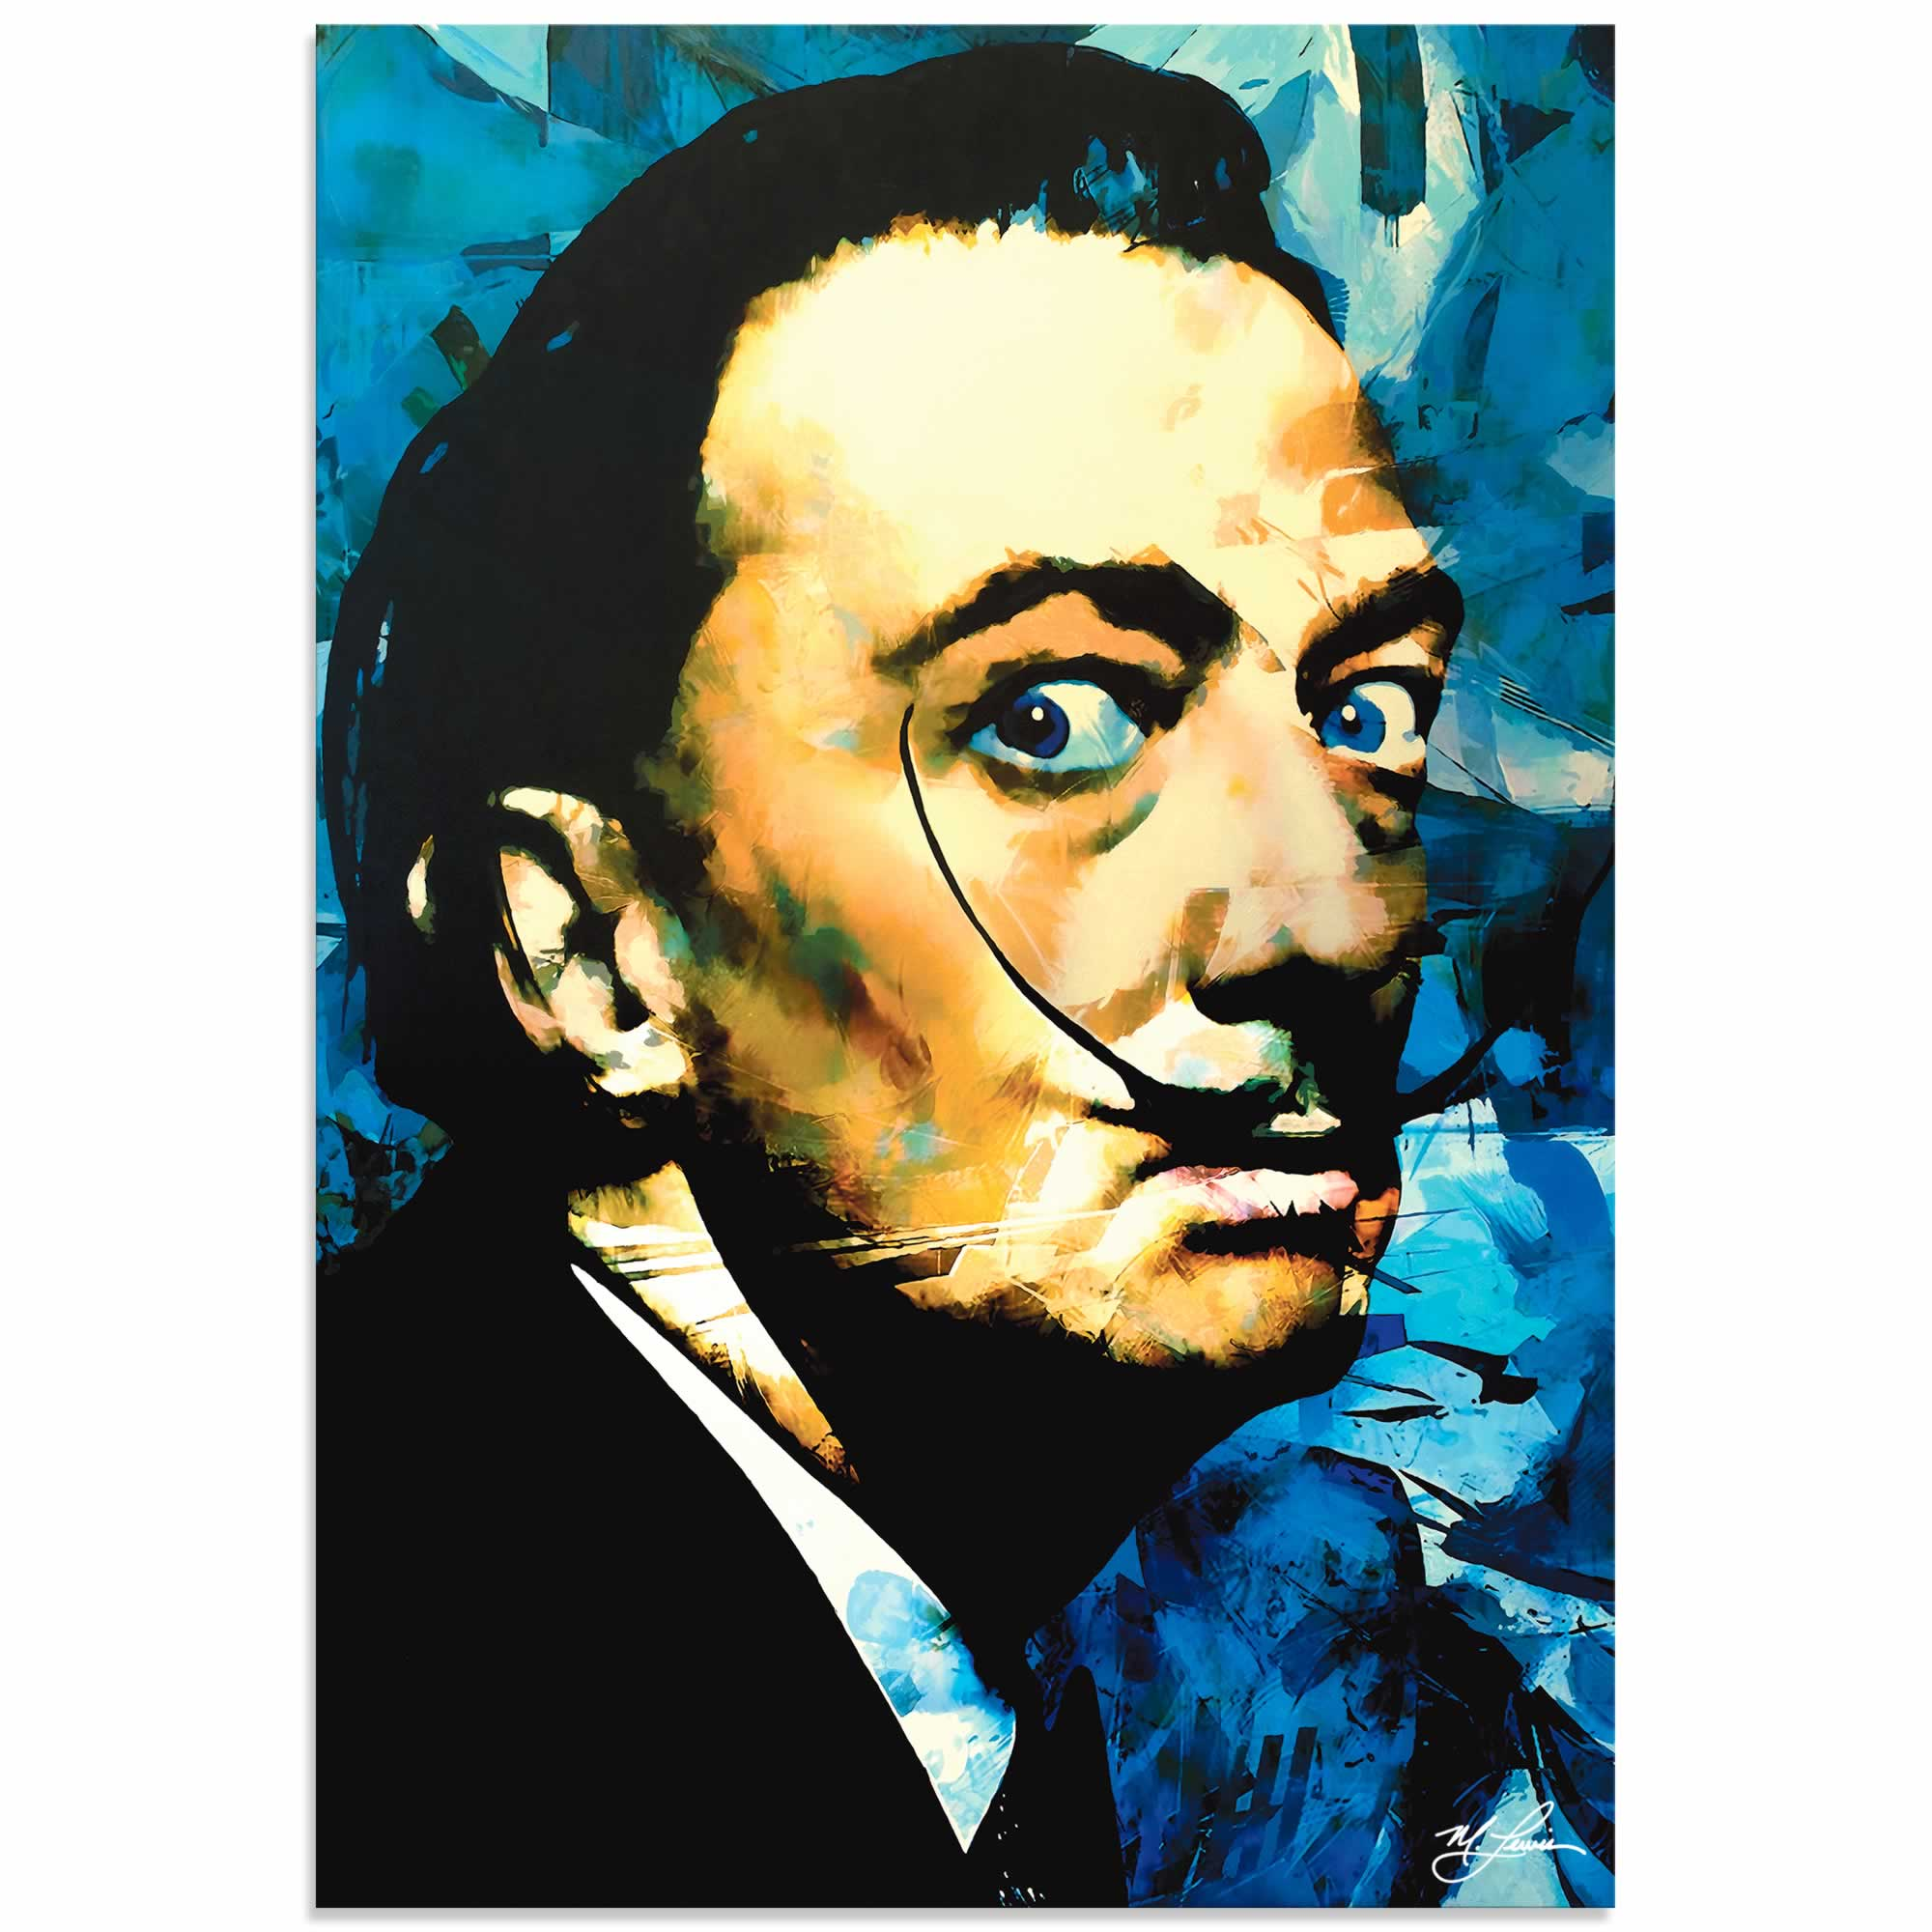 Salvador Dali Apparatus Man | Pop Art Painting by Mark Lewis, Signed & Numbered Limited Edition